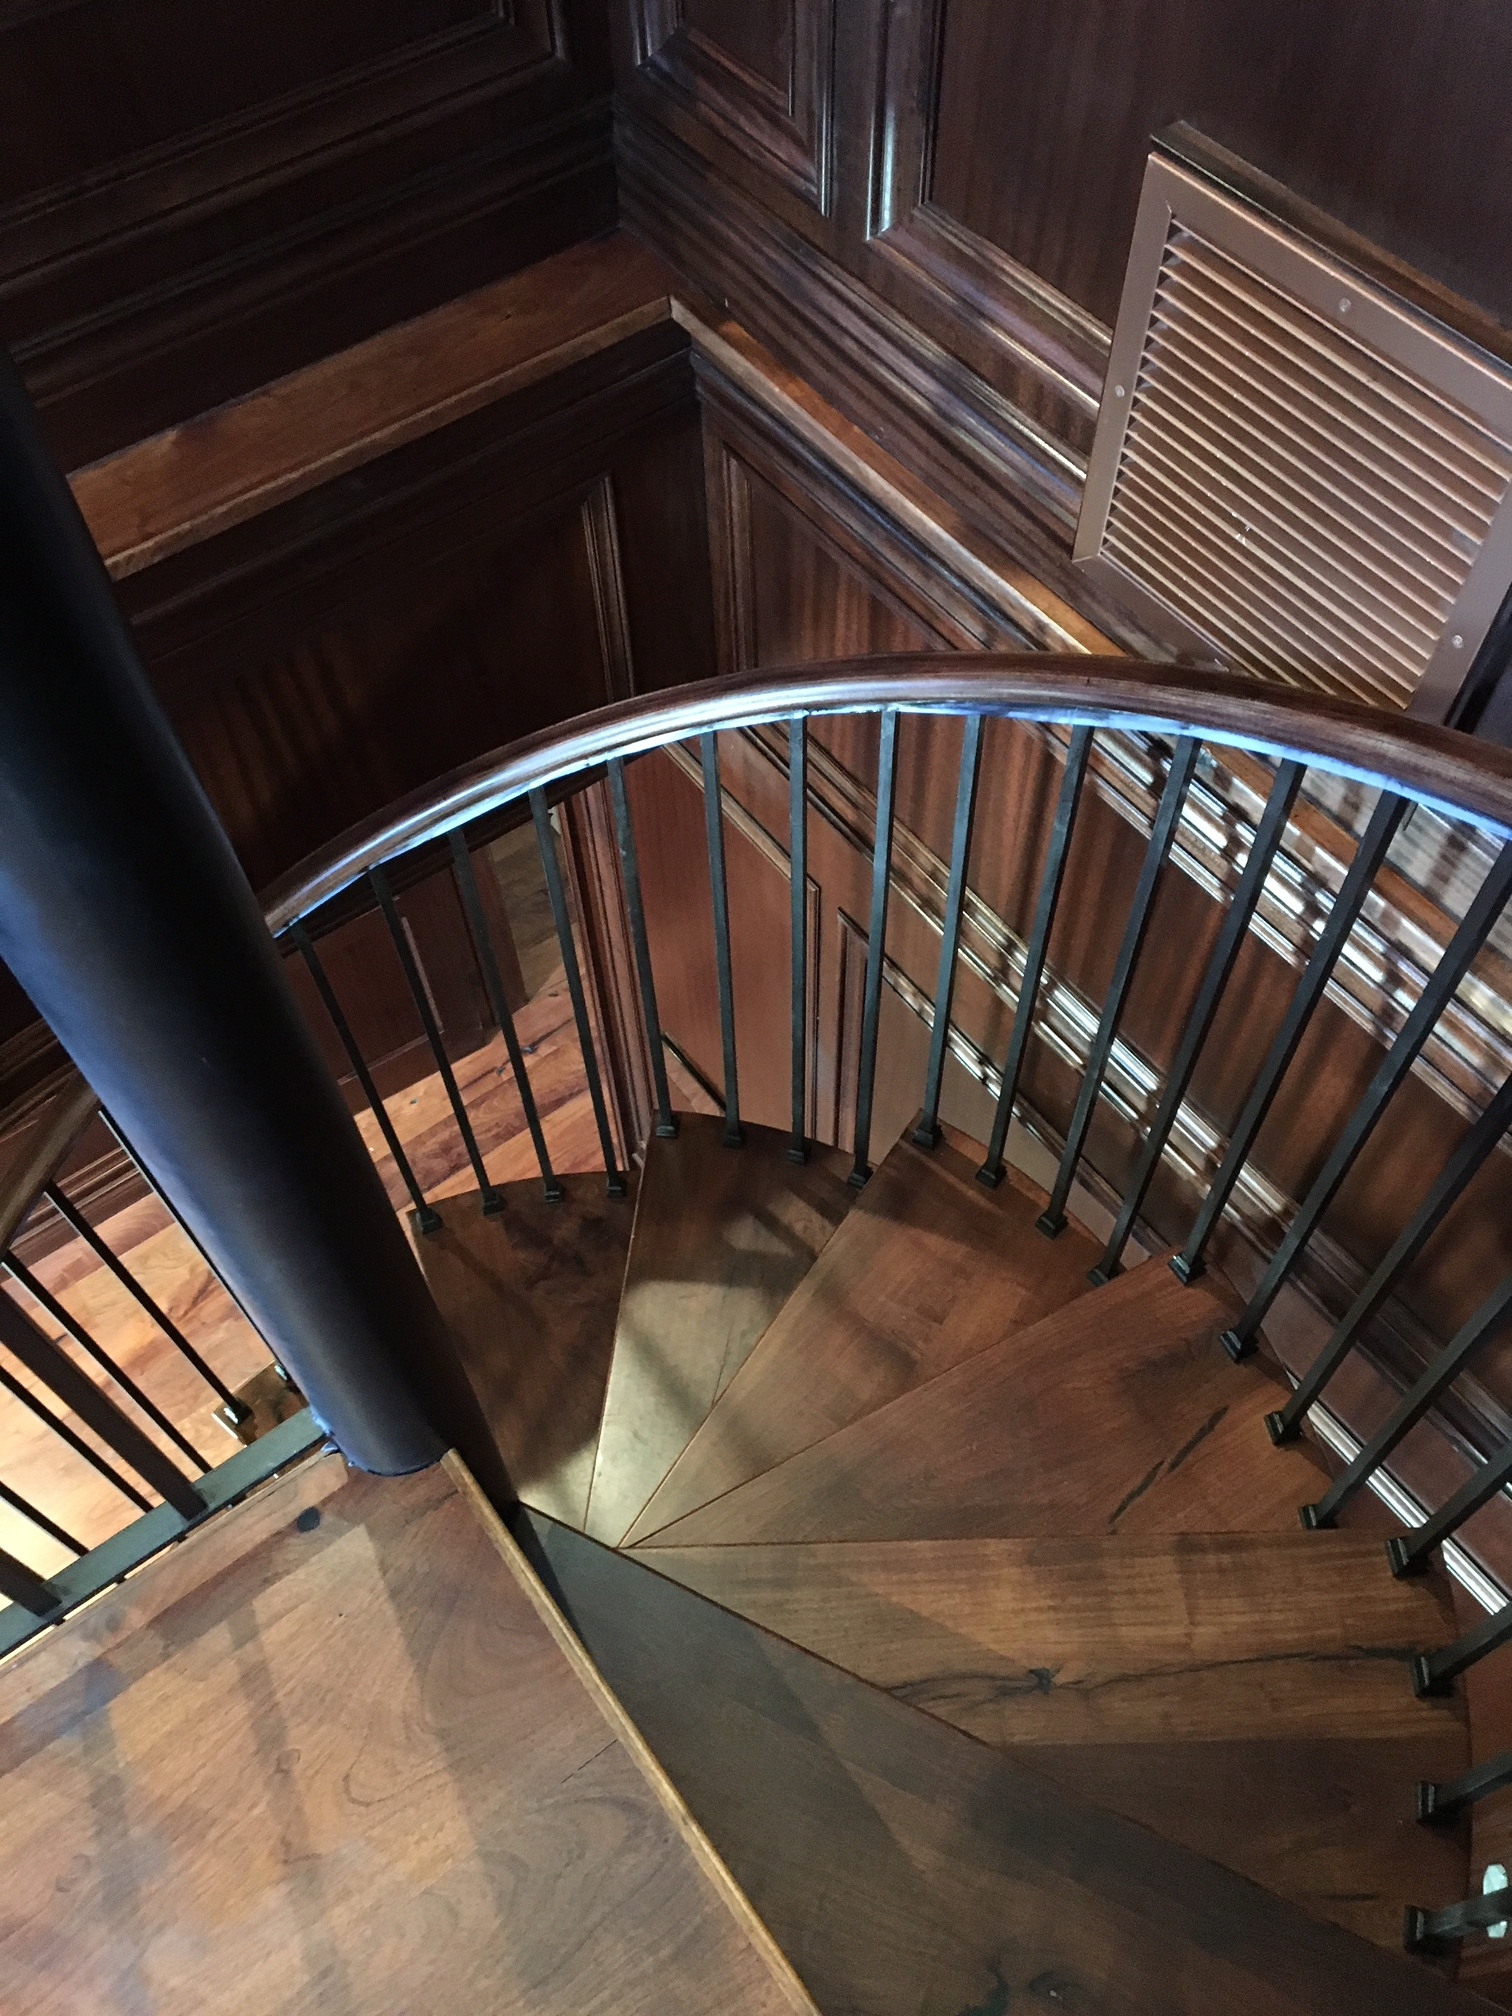 Mesquite Spiral Stairs located in Dripping Springs